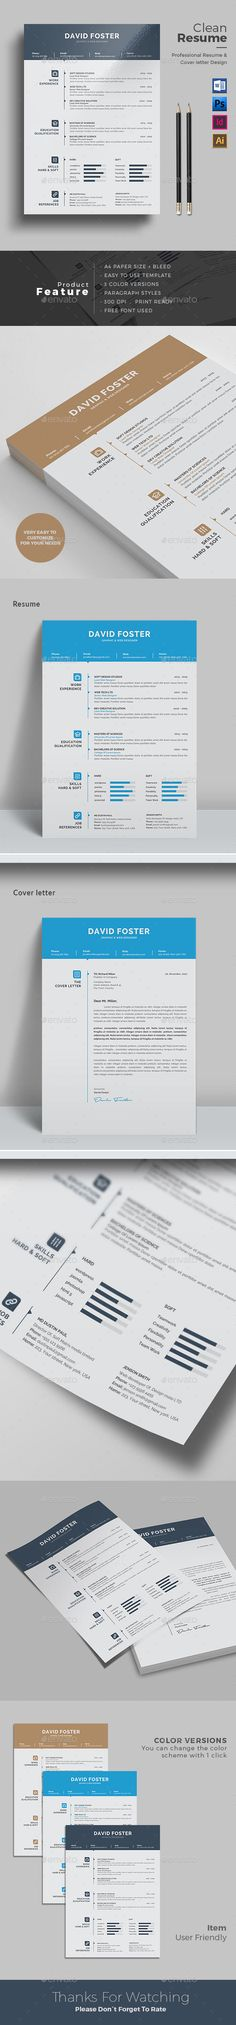 Resume \/ CV Template, Resume cv and Creative resume templates - net resume